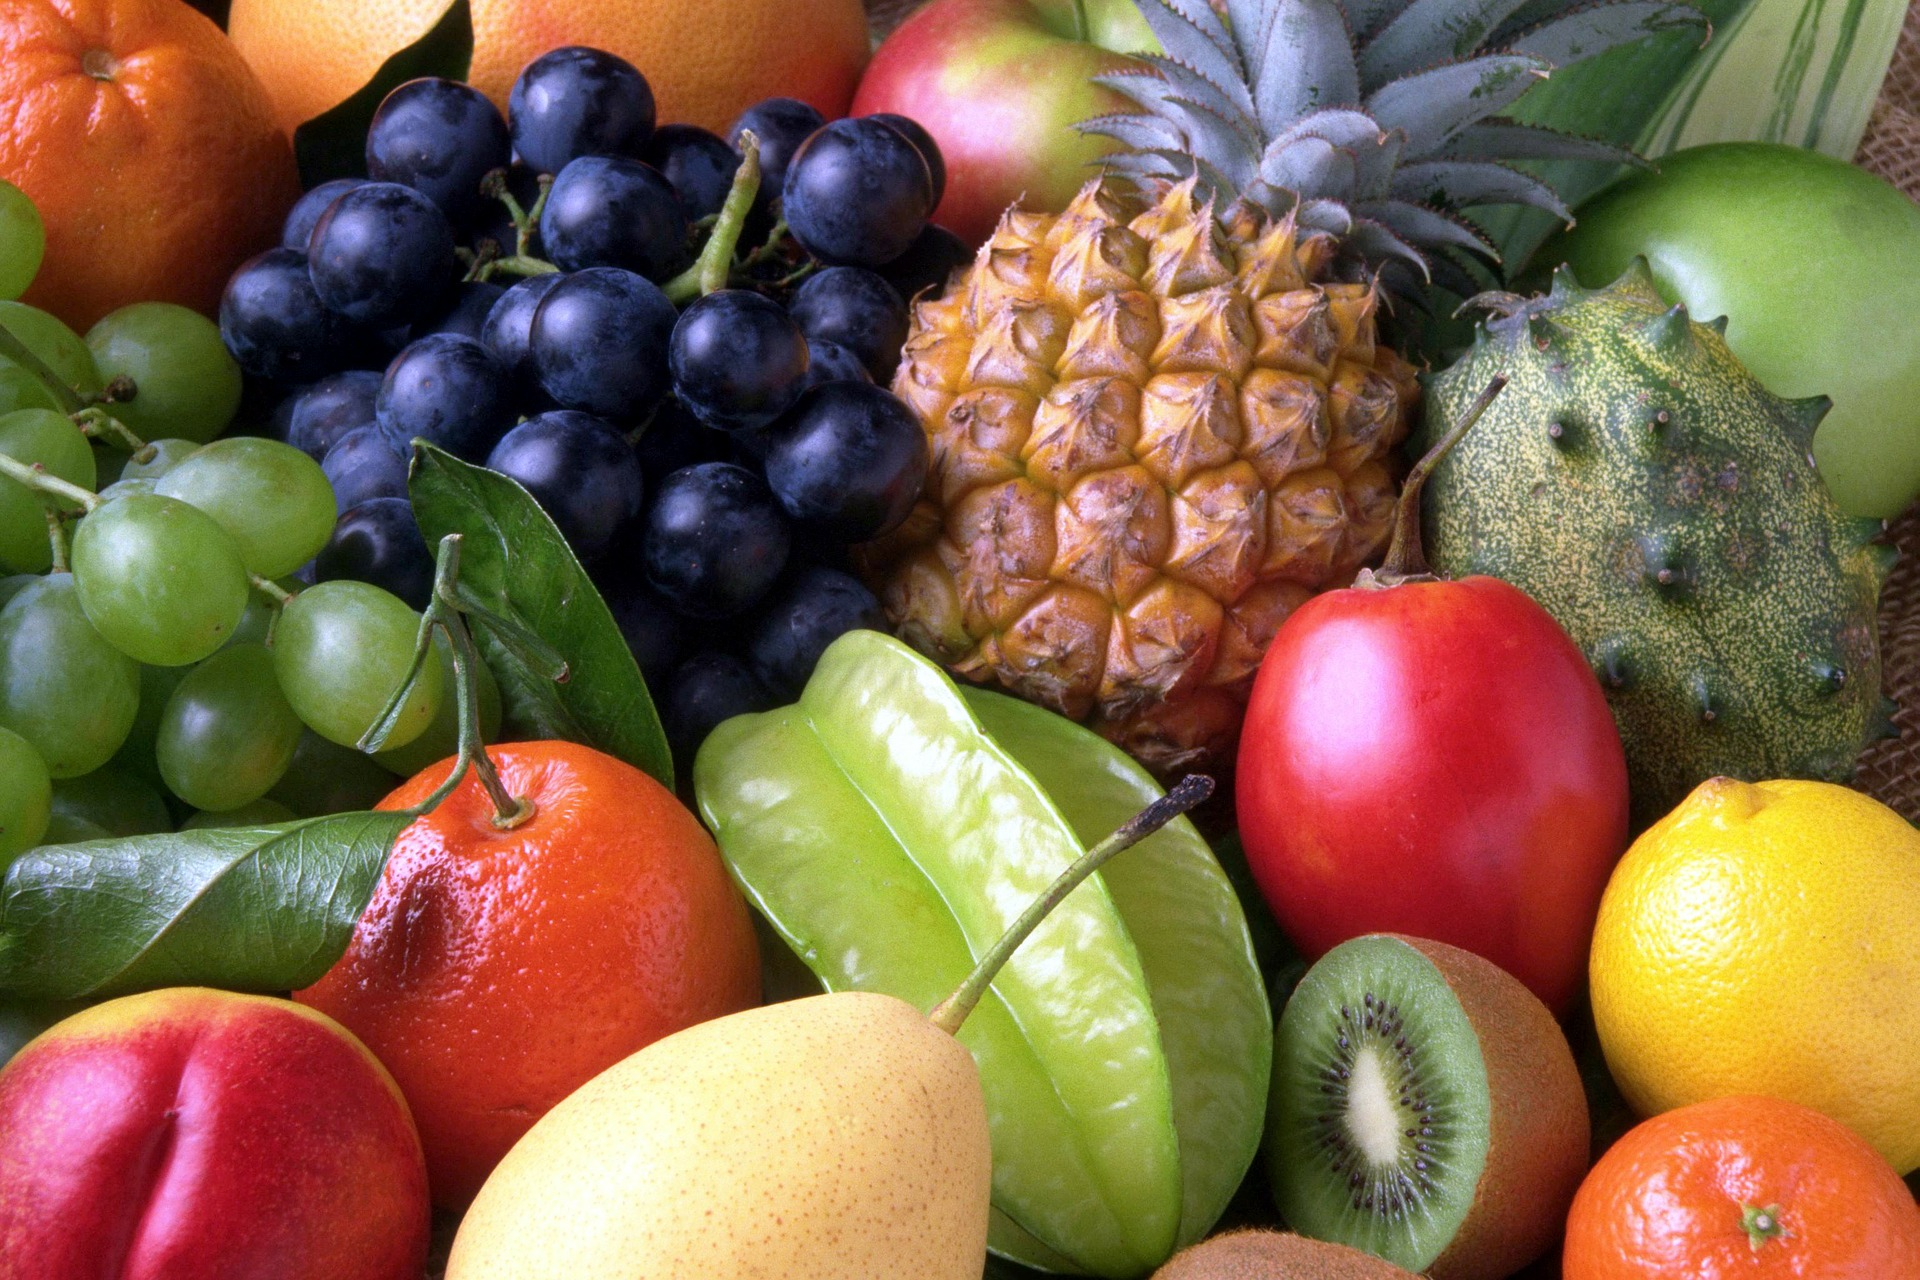 New guidelines out of the UK suggest that fruit should be kept in the fridge in order to keep them fresher longer.